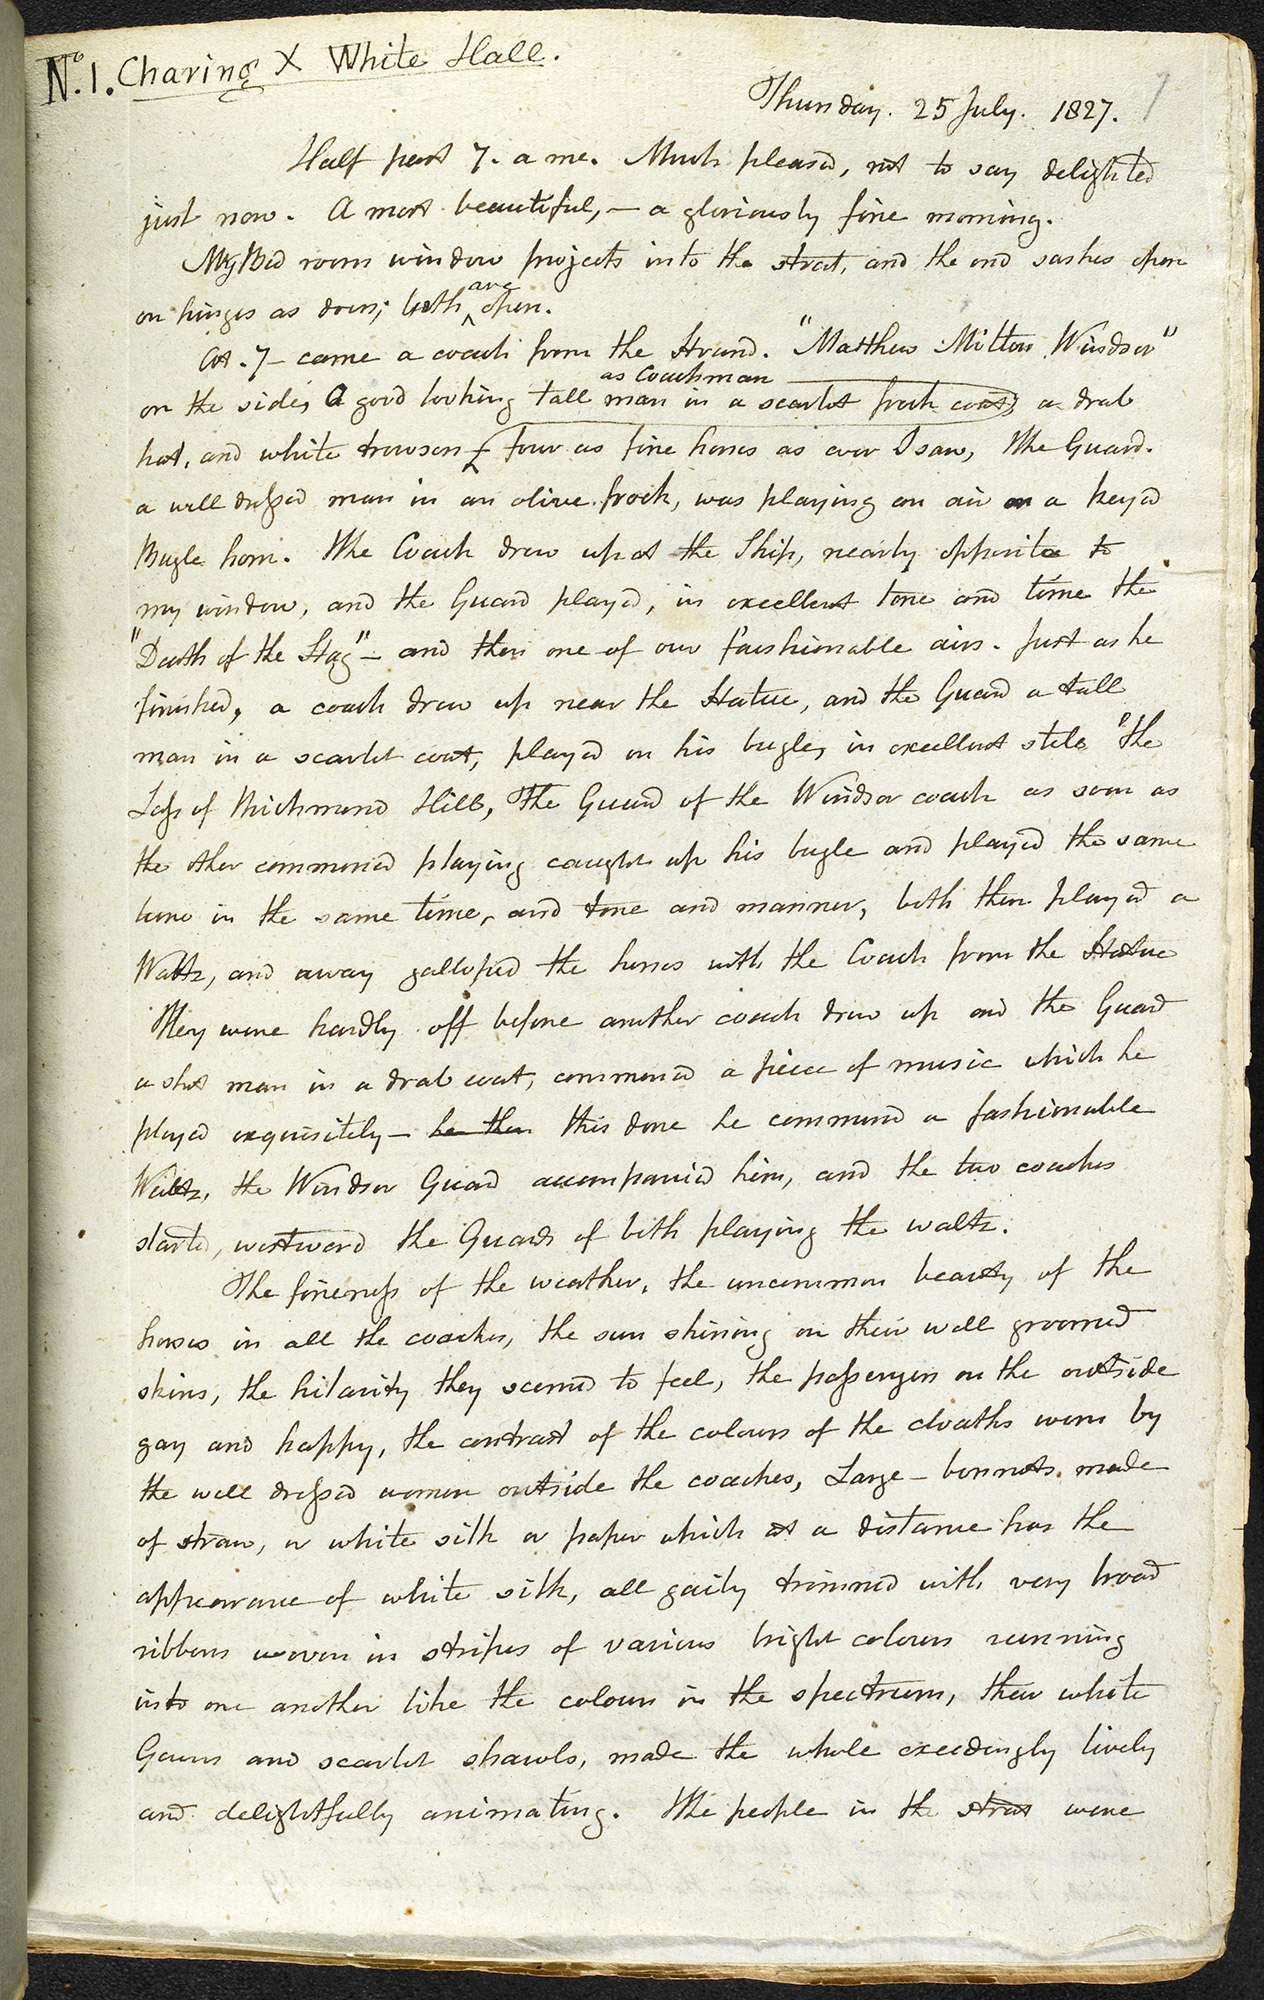 Extract from the diary of Francis Place describing a morning in London, 1827